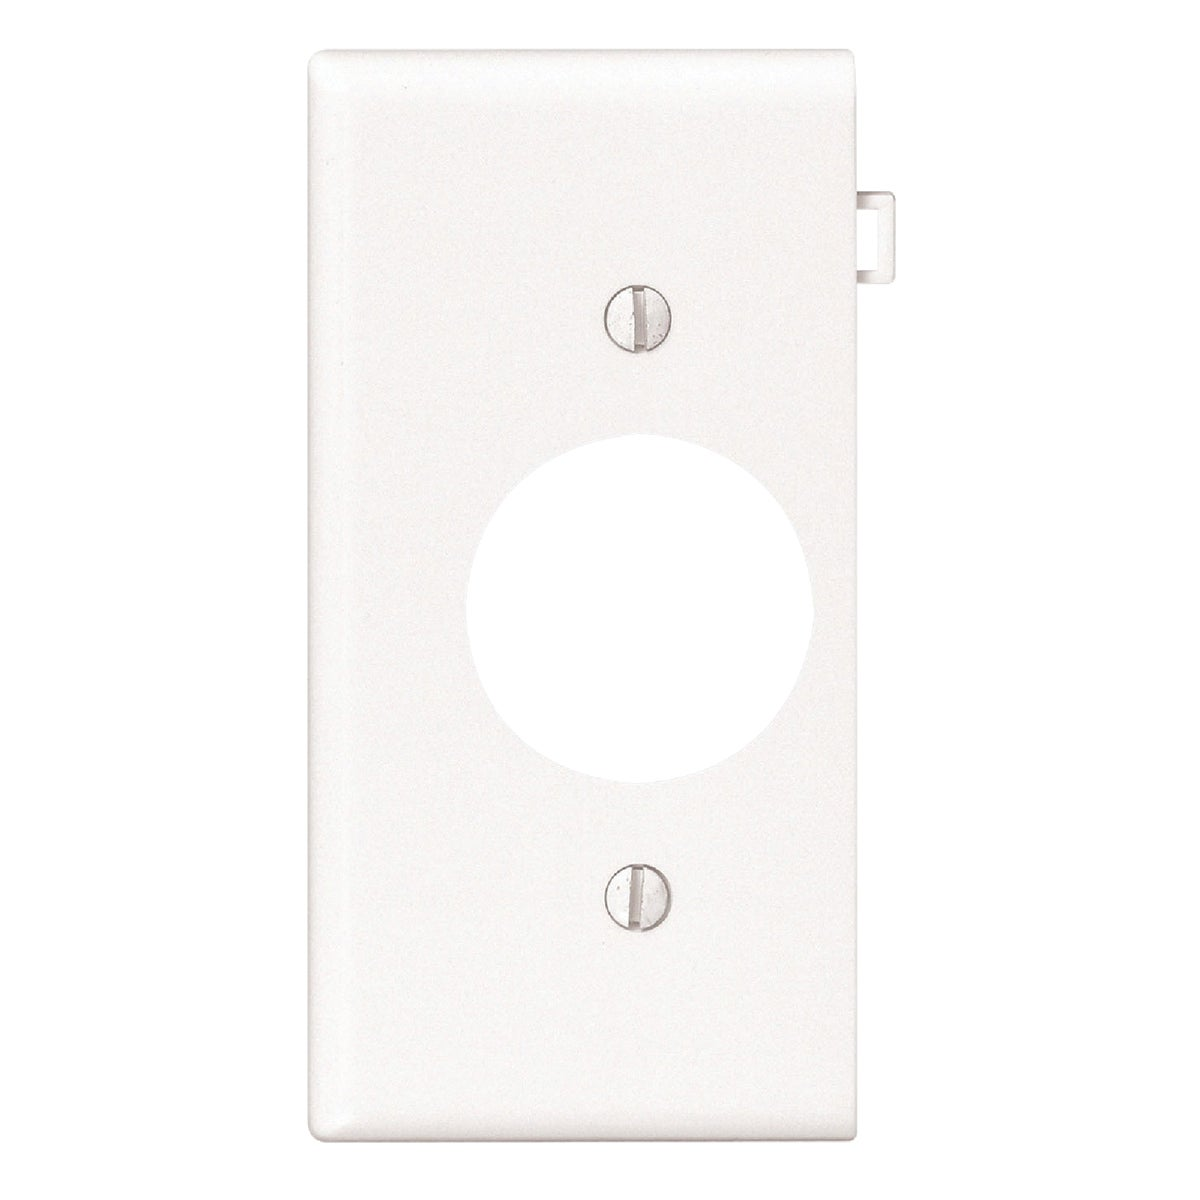 WHT SINGLE END PLATE - PSE7W by Leviton Mfg Co